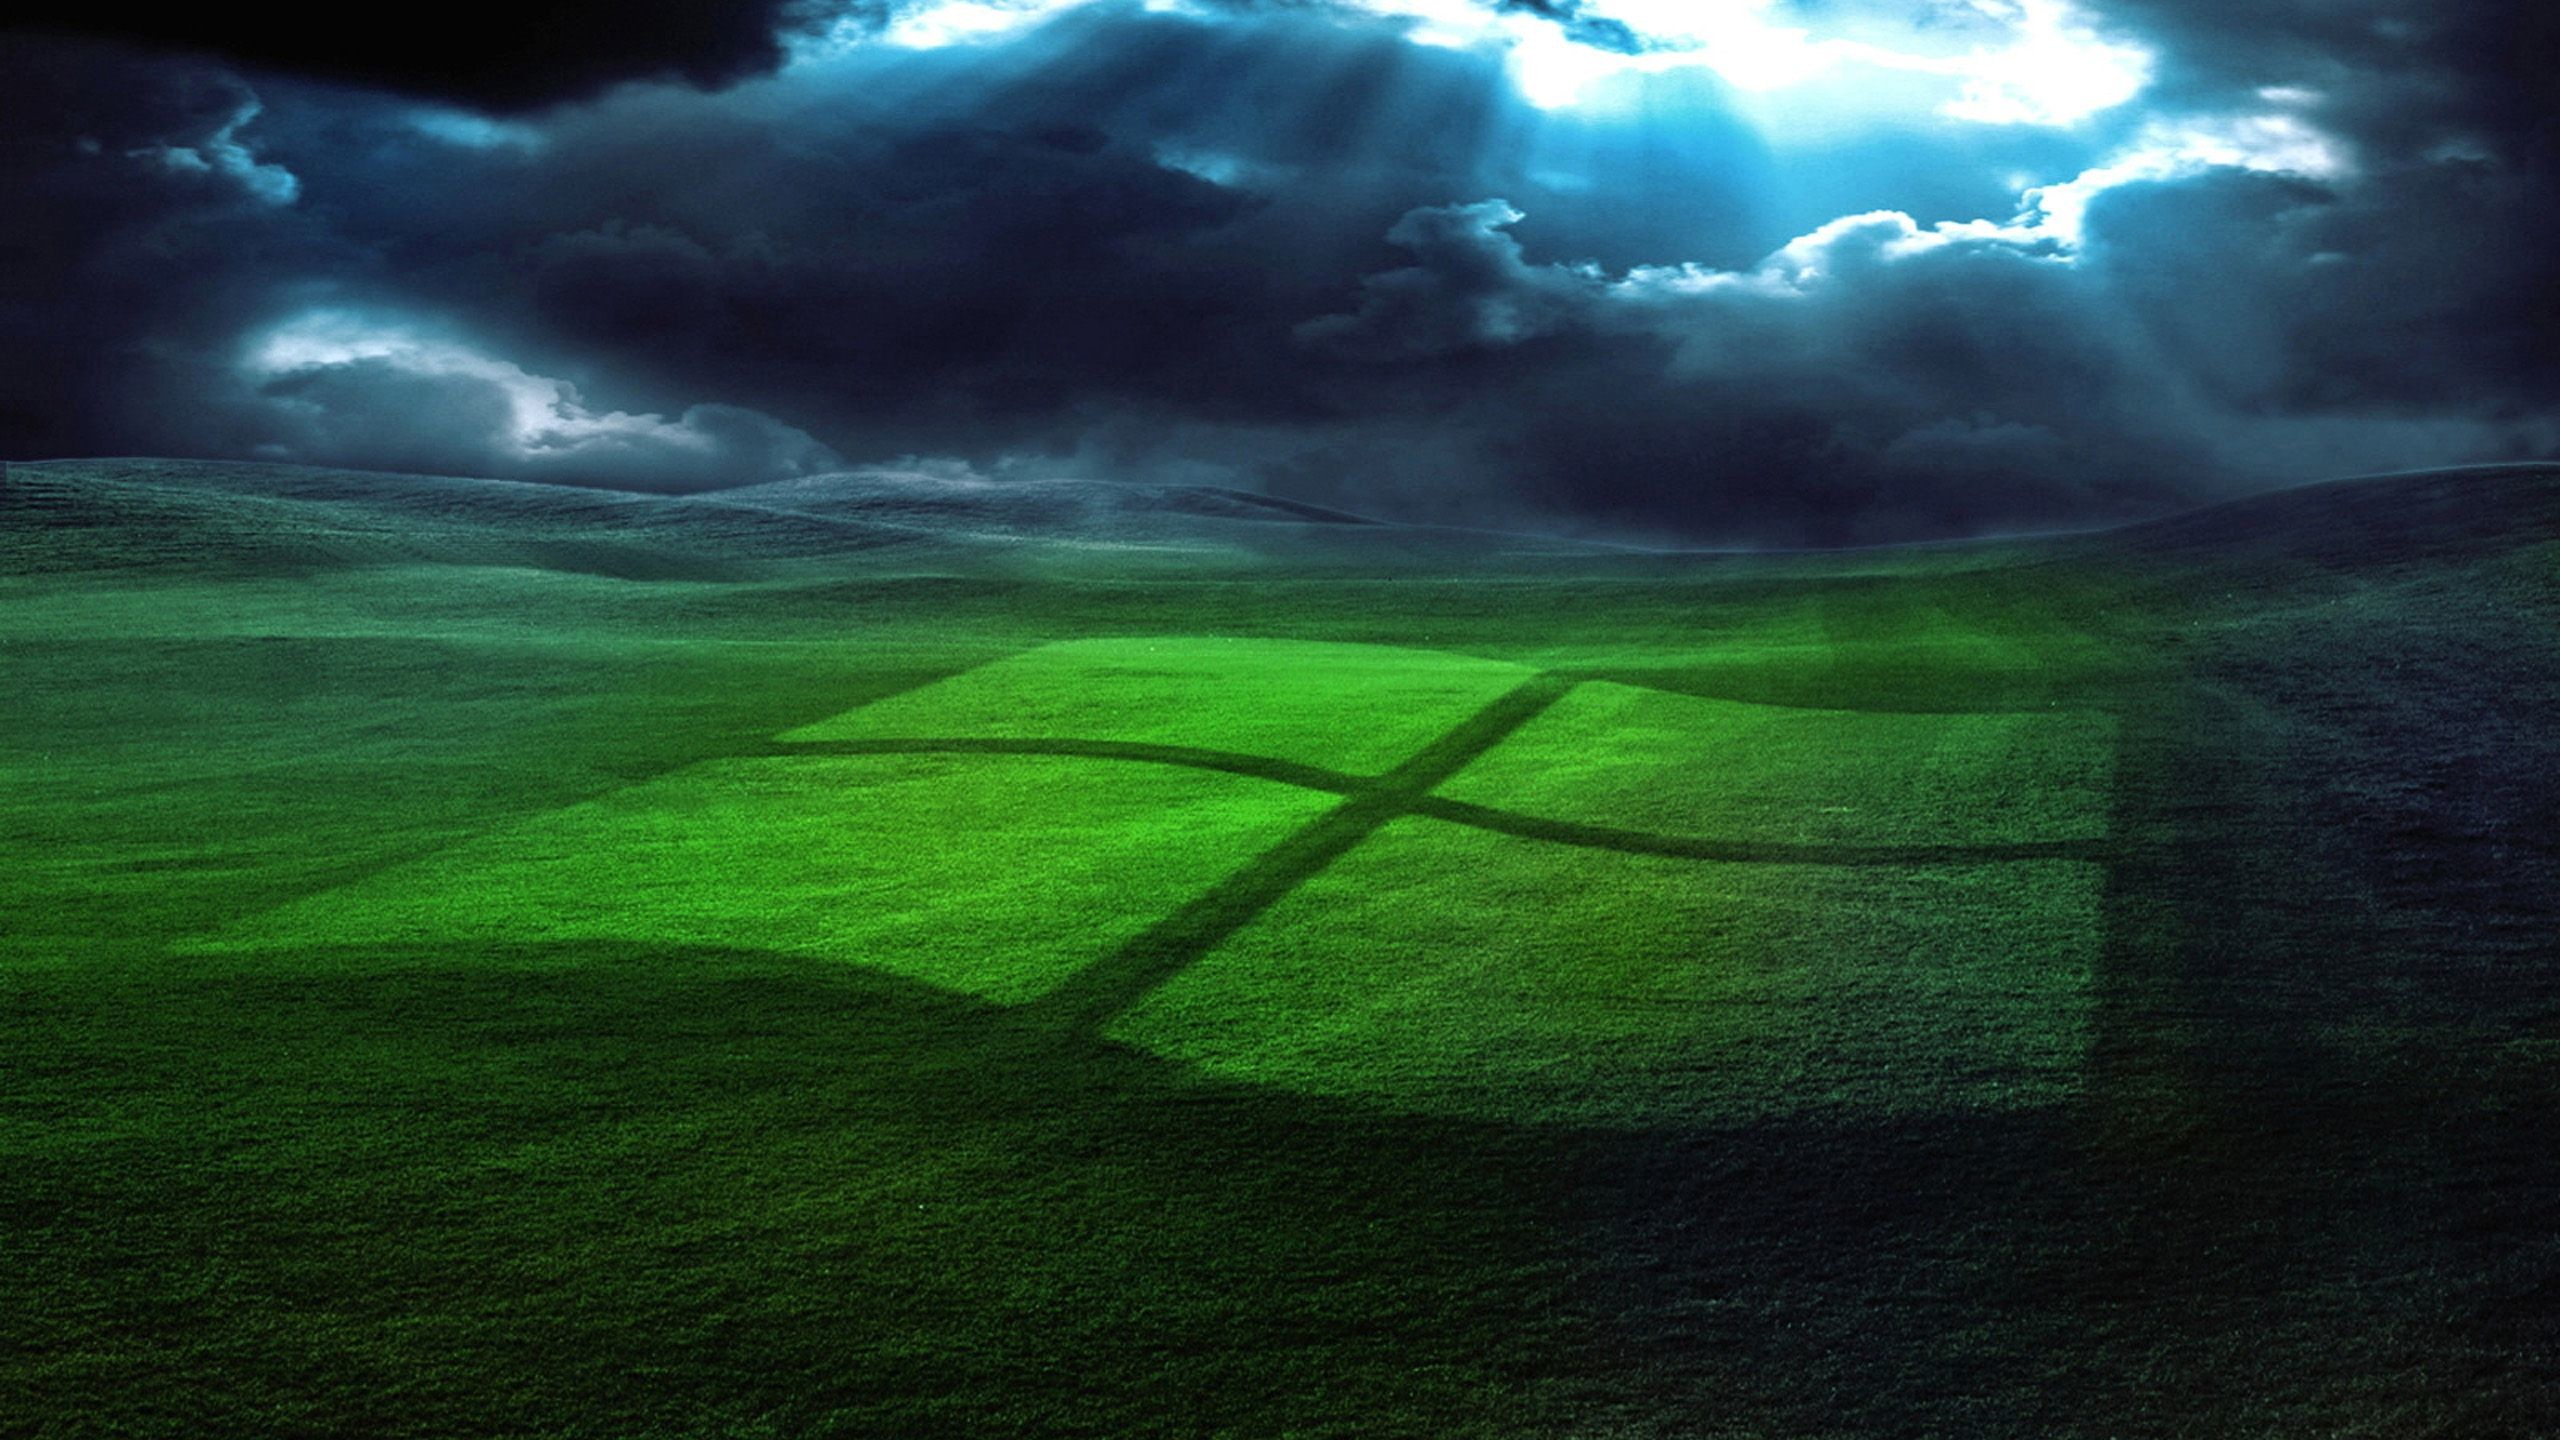 Free Live Wallpapers For Windows Xp. free beautiful nature live